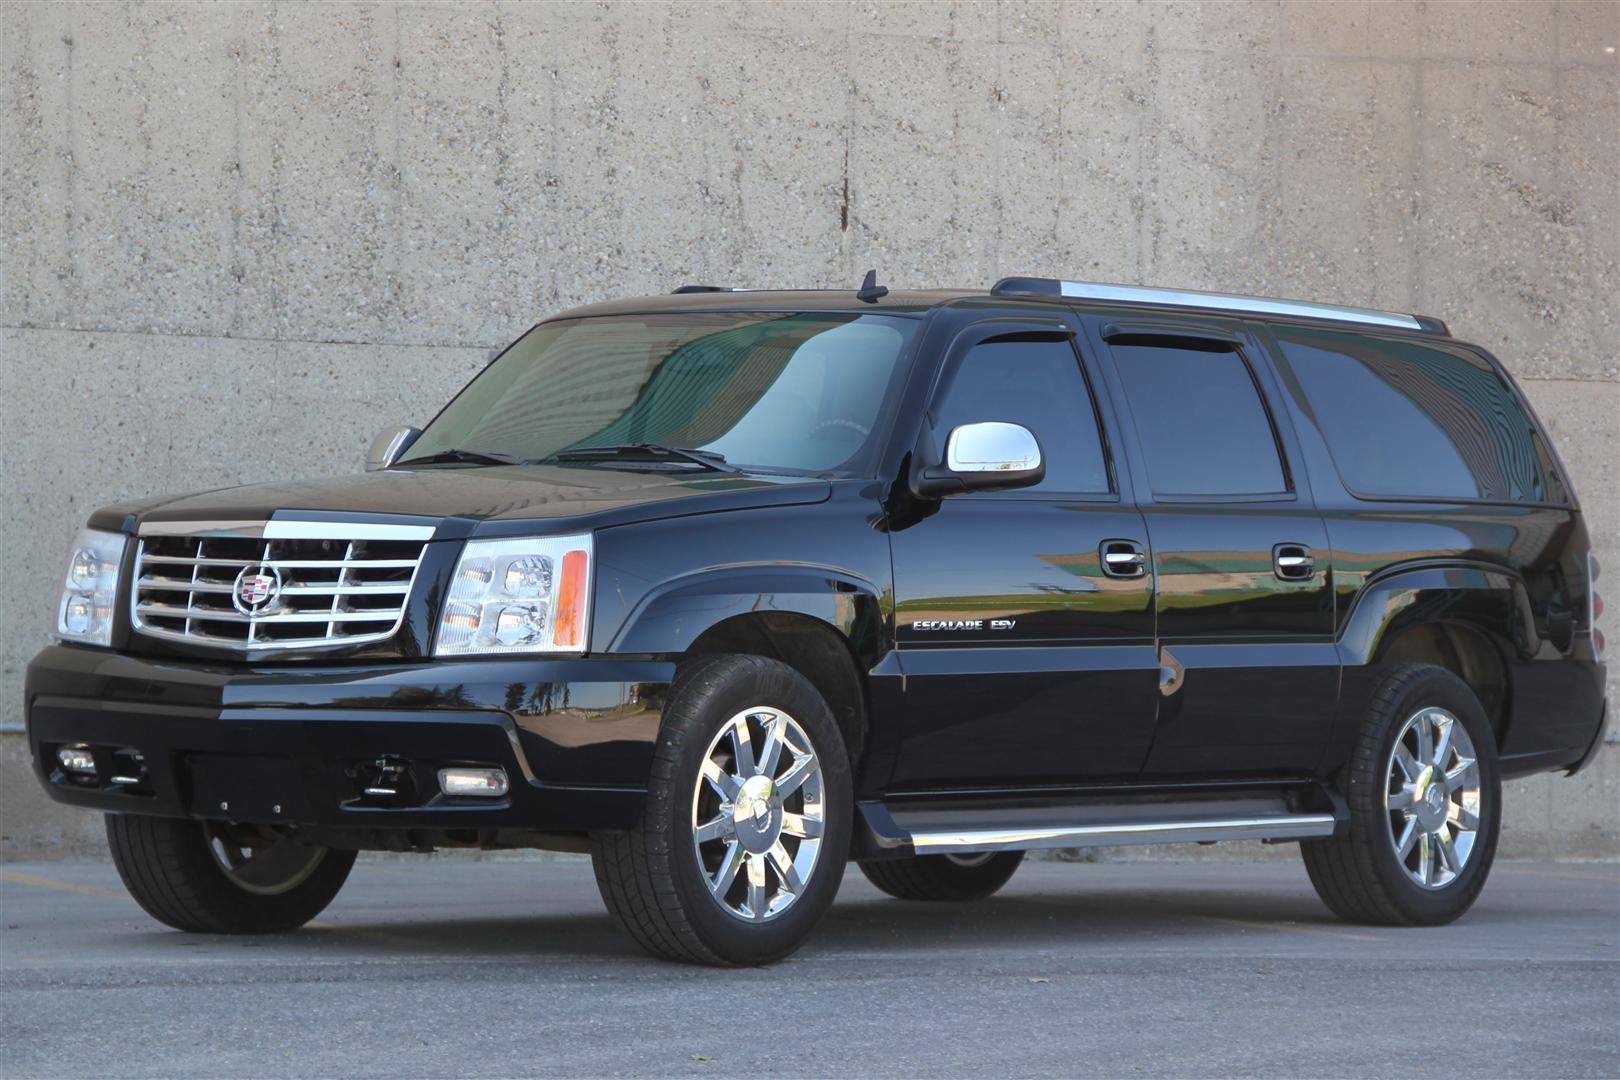 Full Synthetic Oil Change Price >> 2006 Cadillac Escalade ESV Platinum Edition - Envision Auto